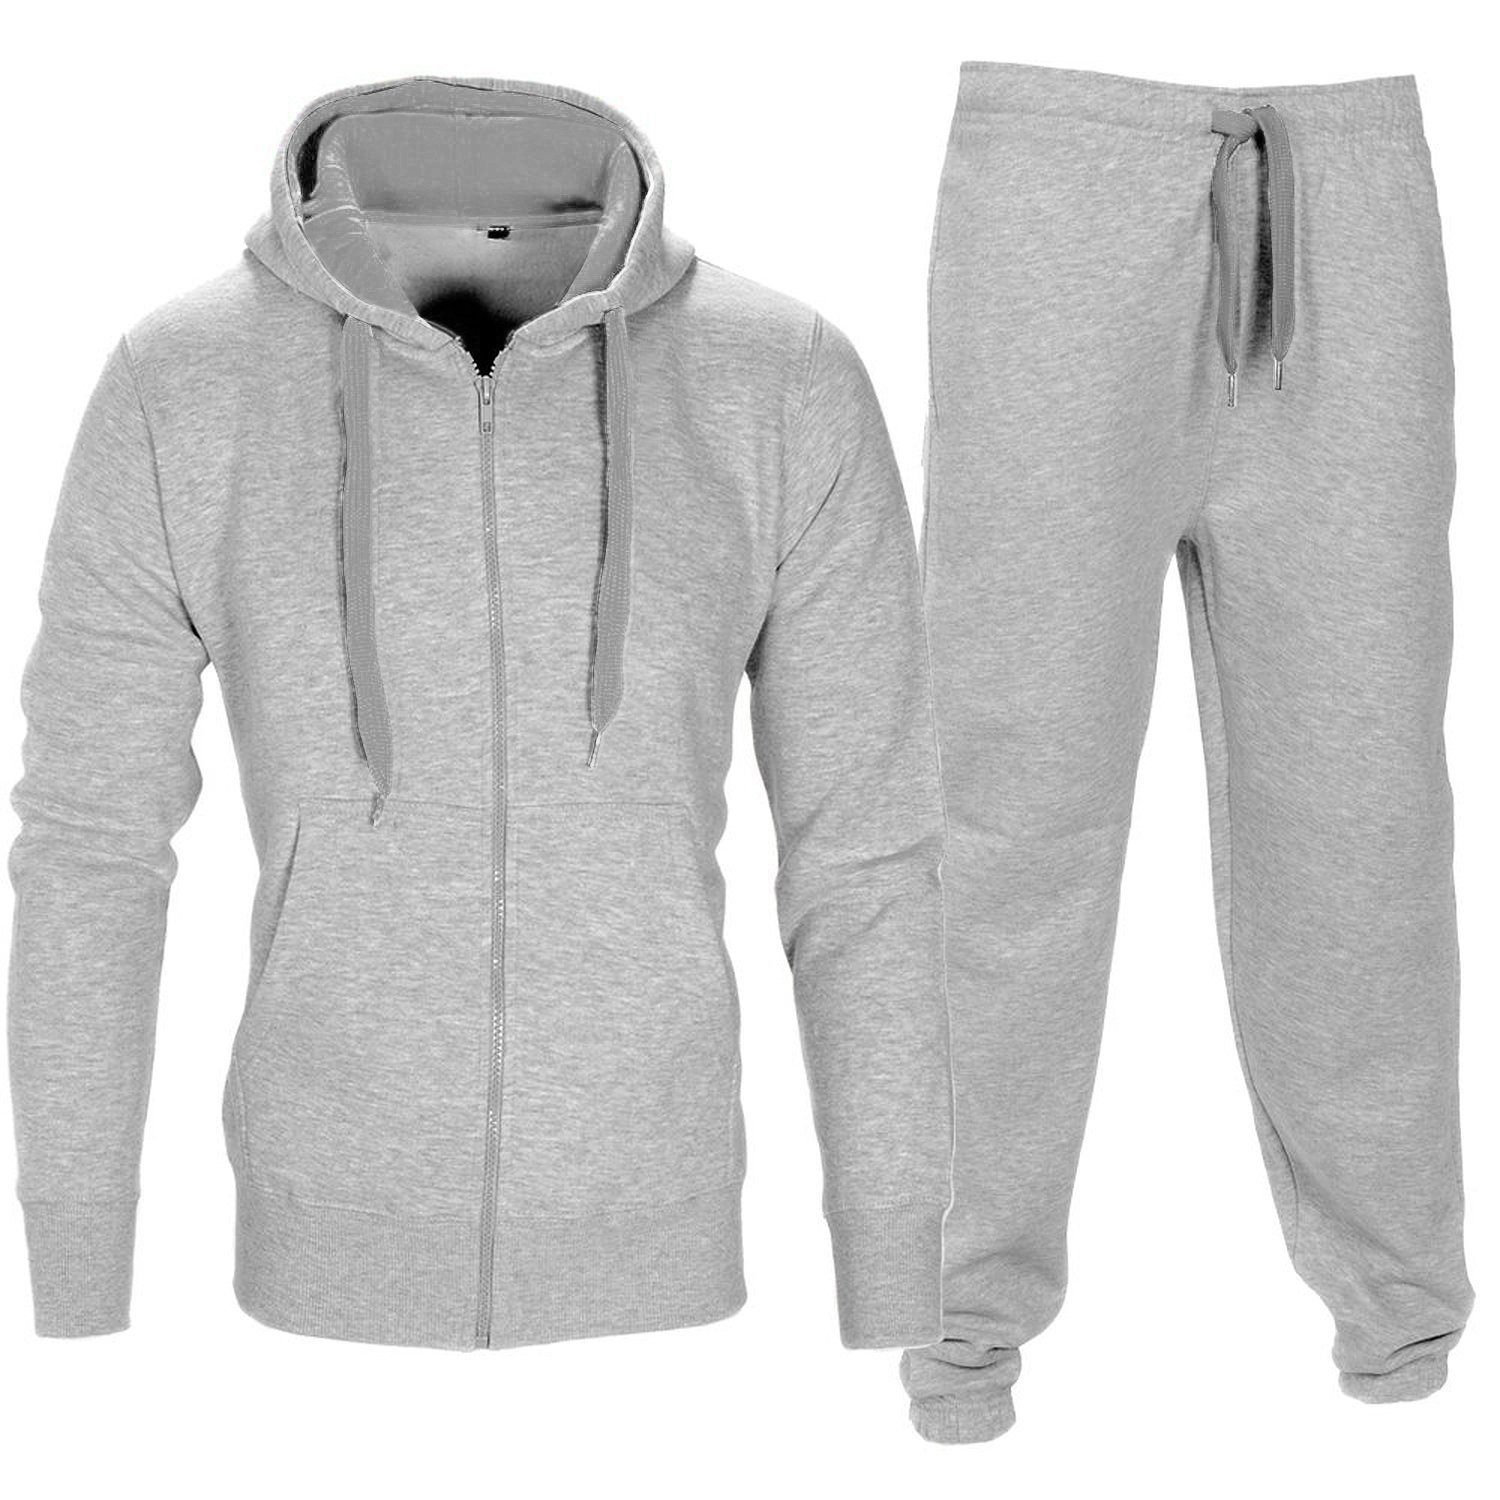 Men Tracksuit Set Contrast Cord Fleece Hoodie Bottom Jogger Gym Sport Suit Pants,Grey,XXX-Large